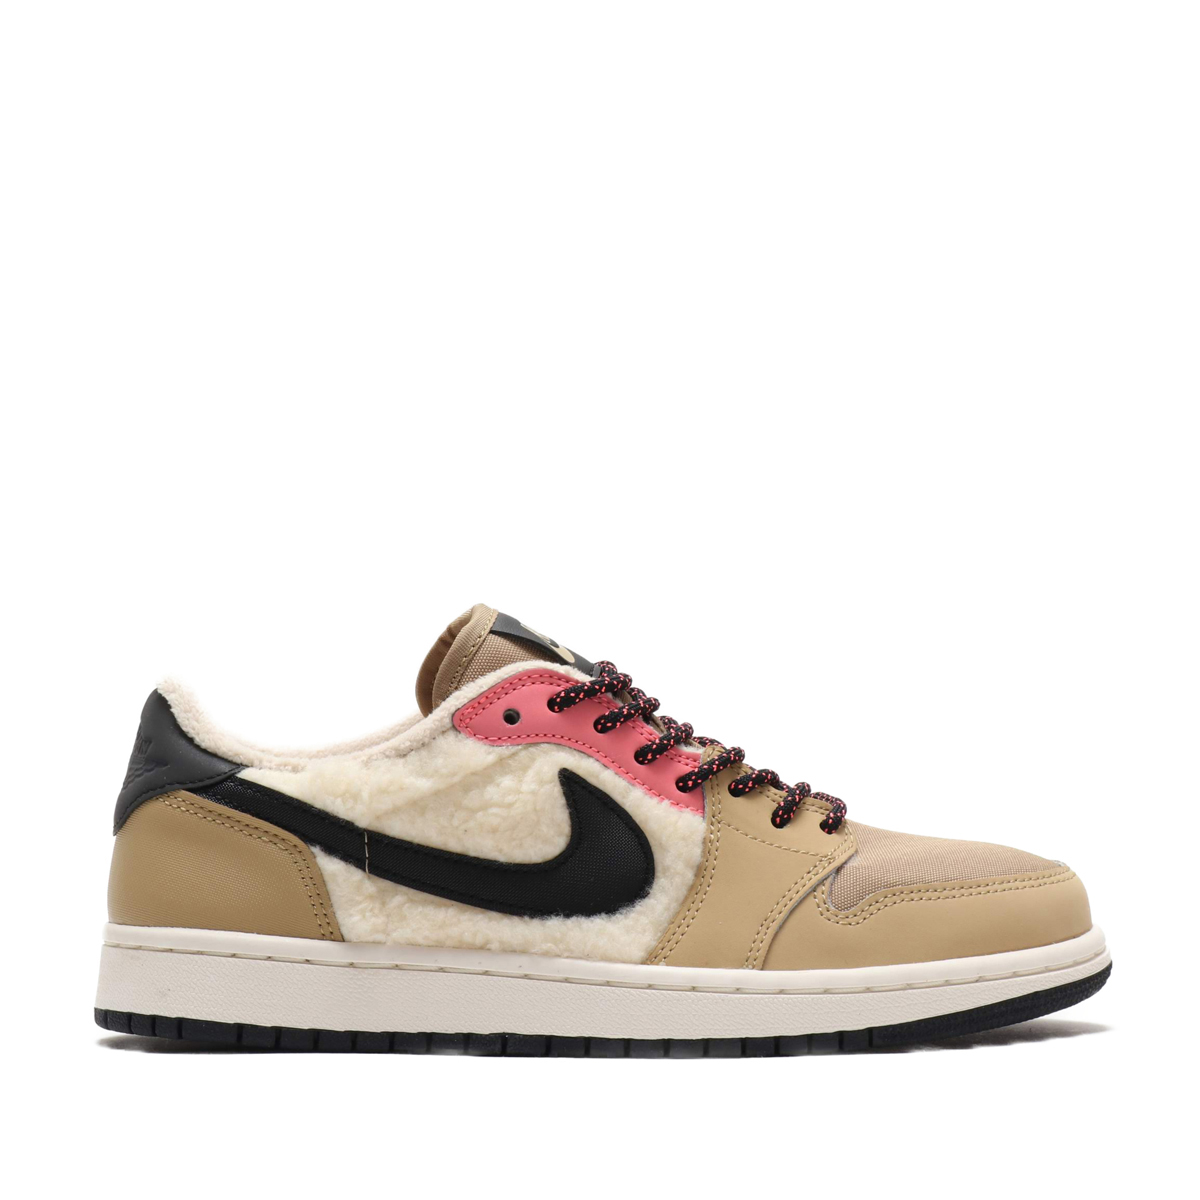 NIKE WMNS AIR JORDAN 1 RETRO LOW OG (PARACHUTE BEIGE BLACK-BEACH-LAVA GLOW)  (Nike women Air Jordan 1 nostalgic low OG) 7950d7b5af